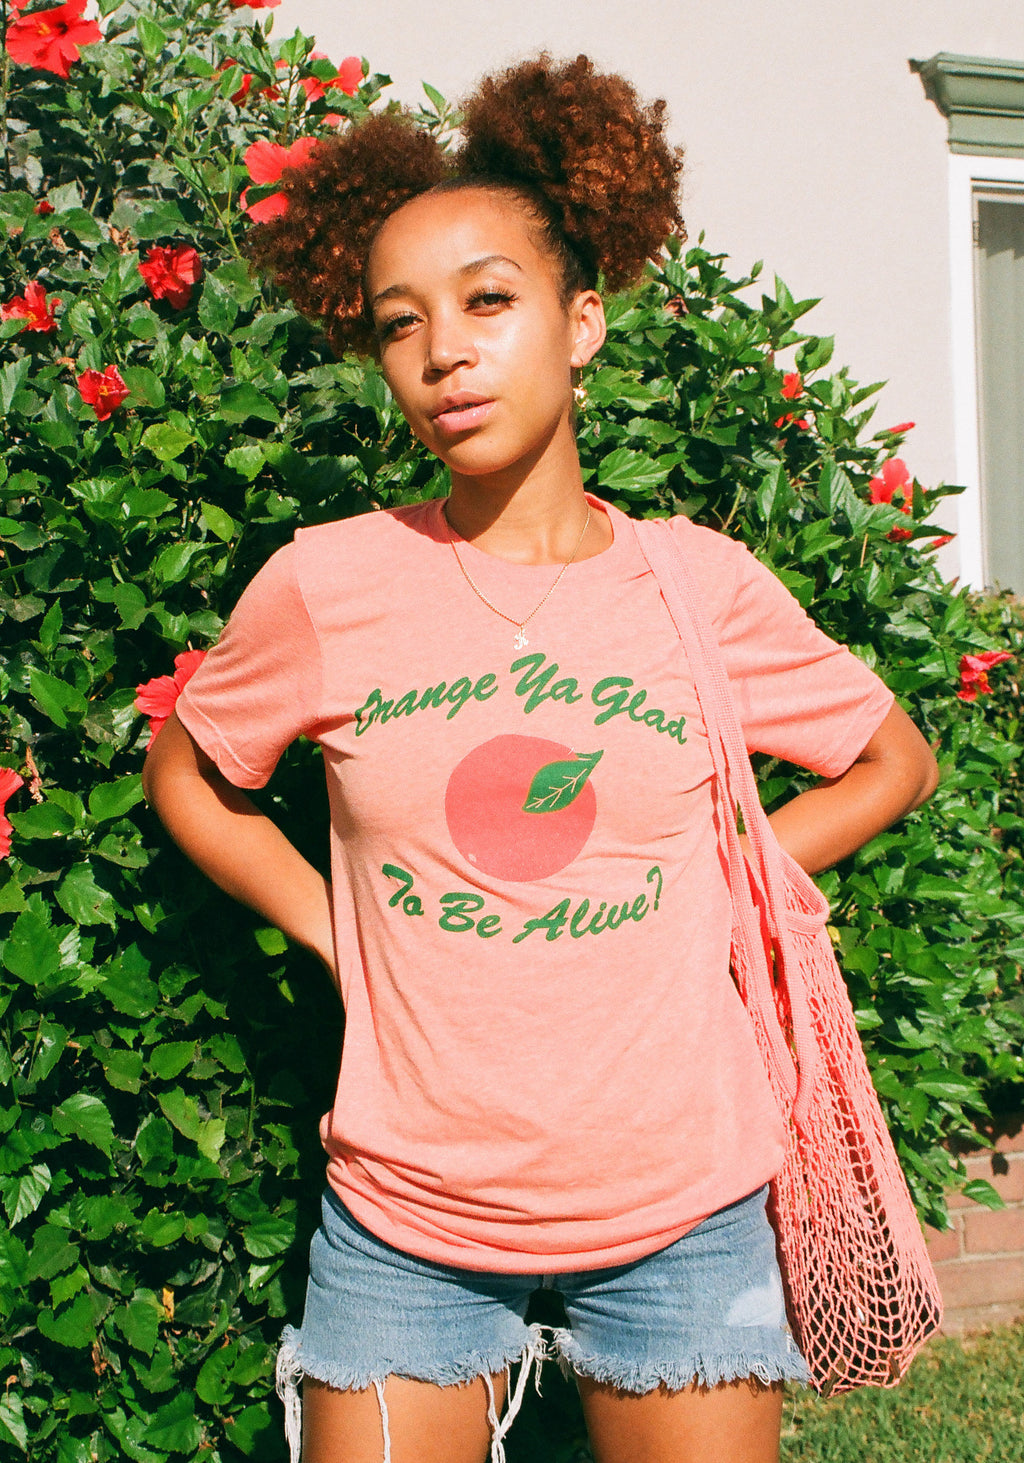 Orange Ya Glad Tee / womens graphic tees / 70s 80s retro vintage style / fruit oranges joke shirt / california valencia naranja tshirt